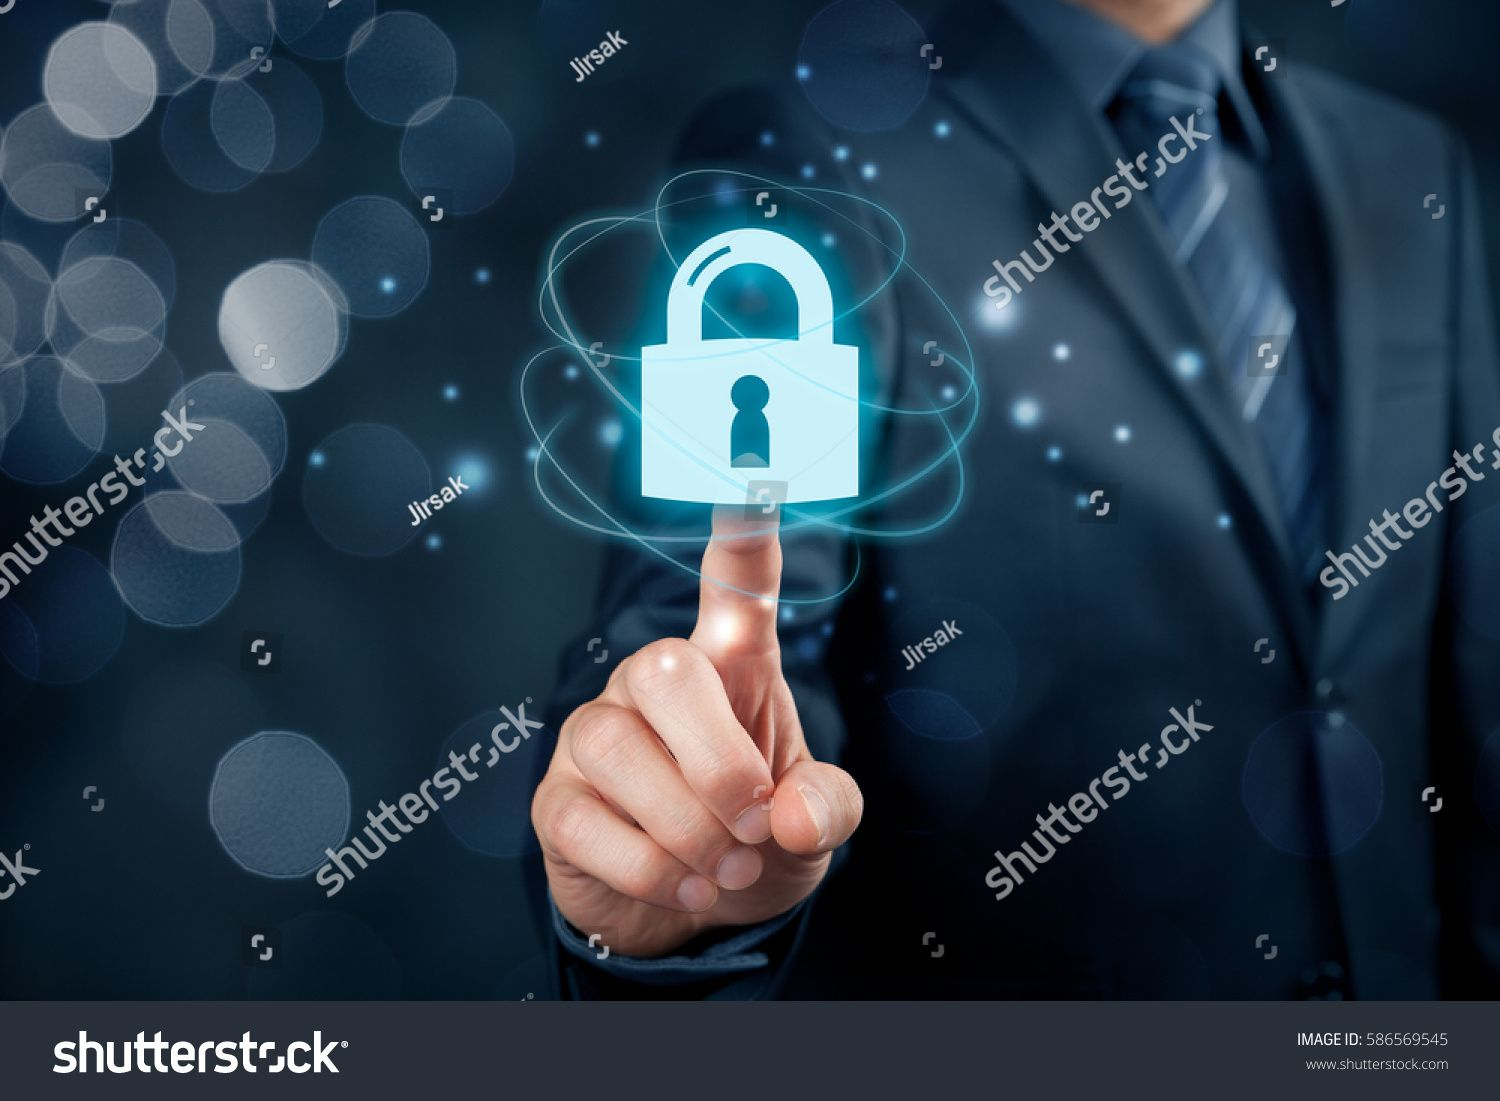 Cybersecurity And Information Technology Security Services Concept Login Or Sign In Internet Concepts In 2020 Cyber Security Information Technology Security Service